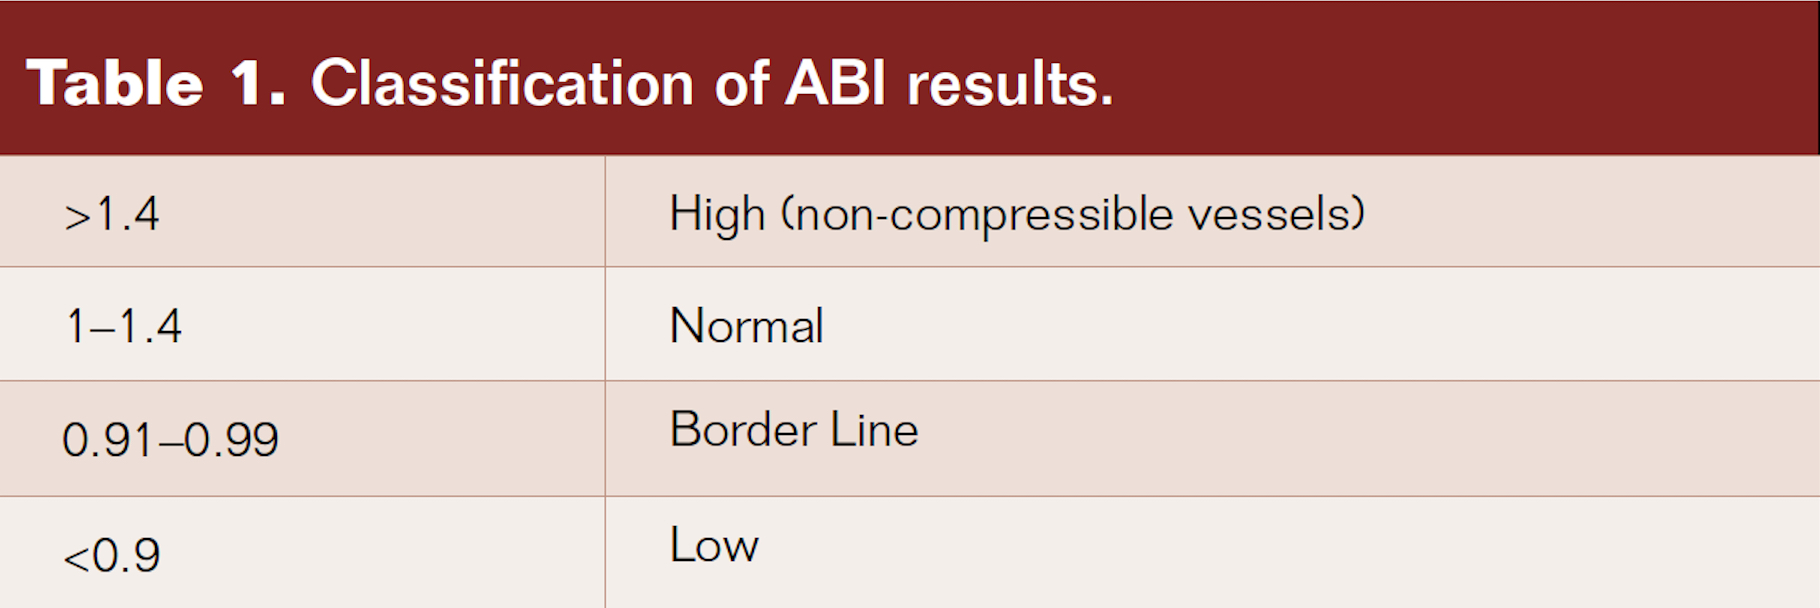 Classification of ABI results